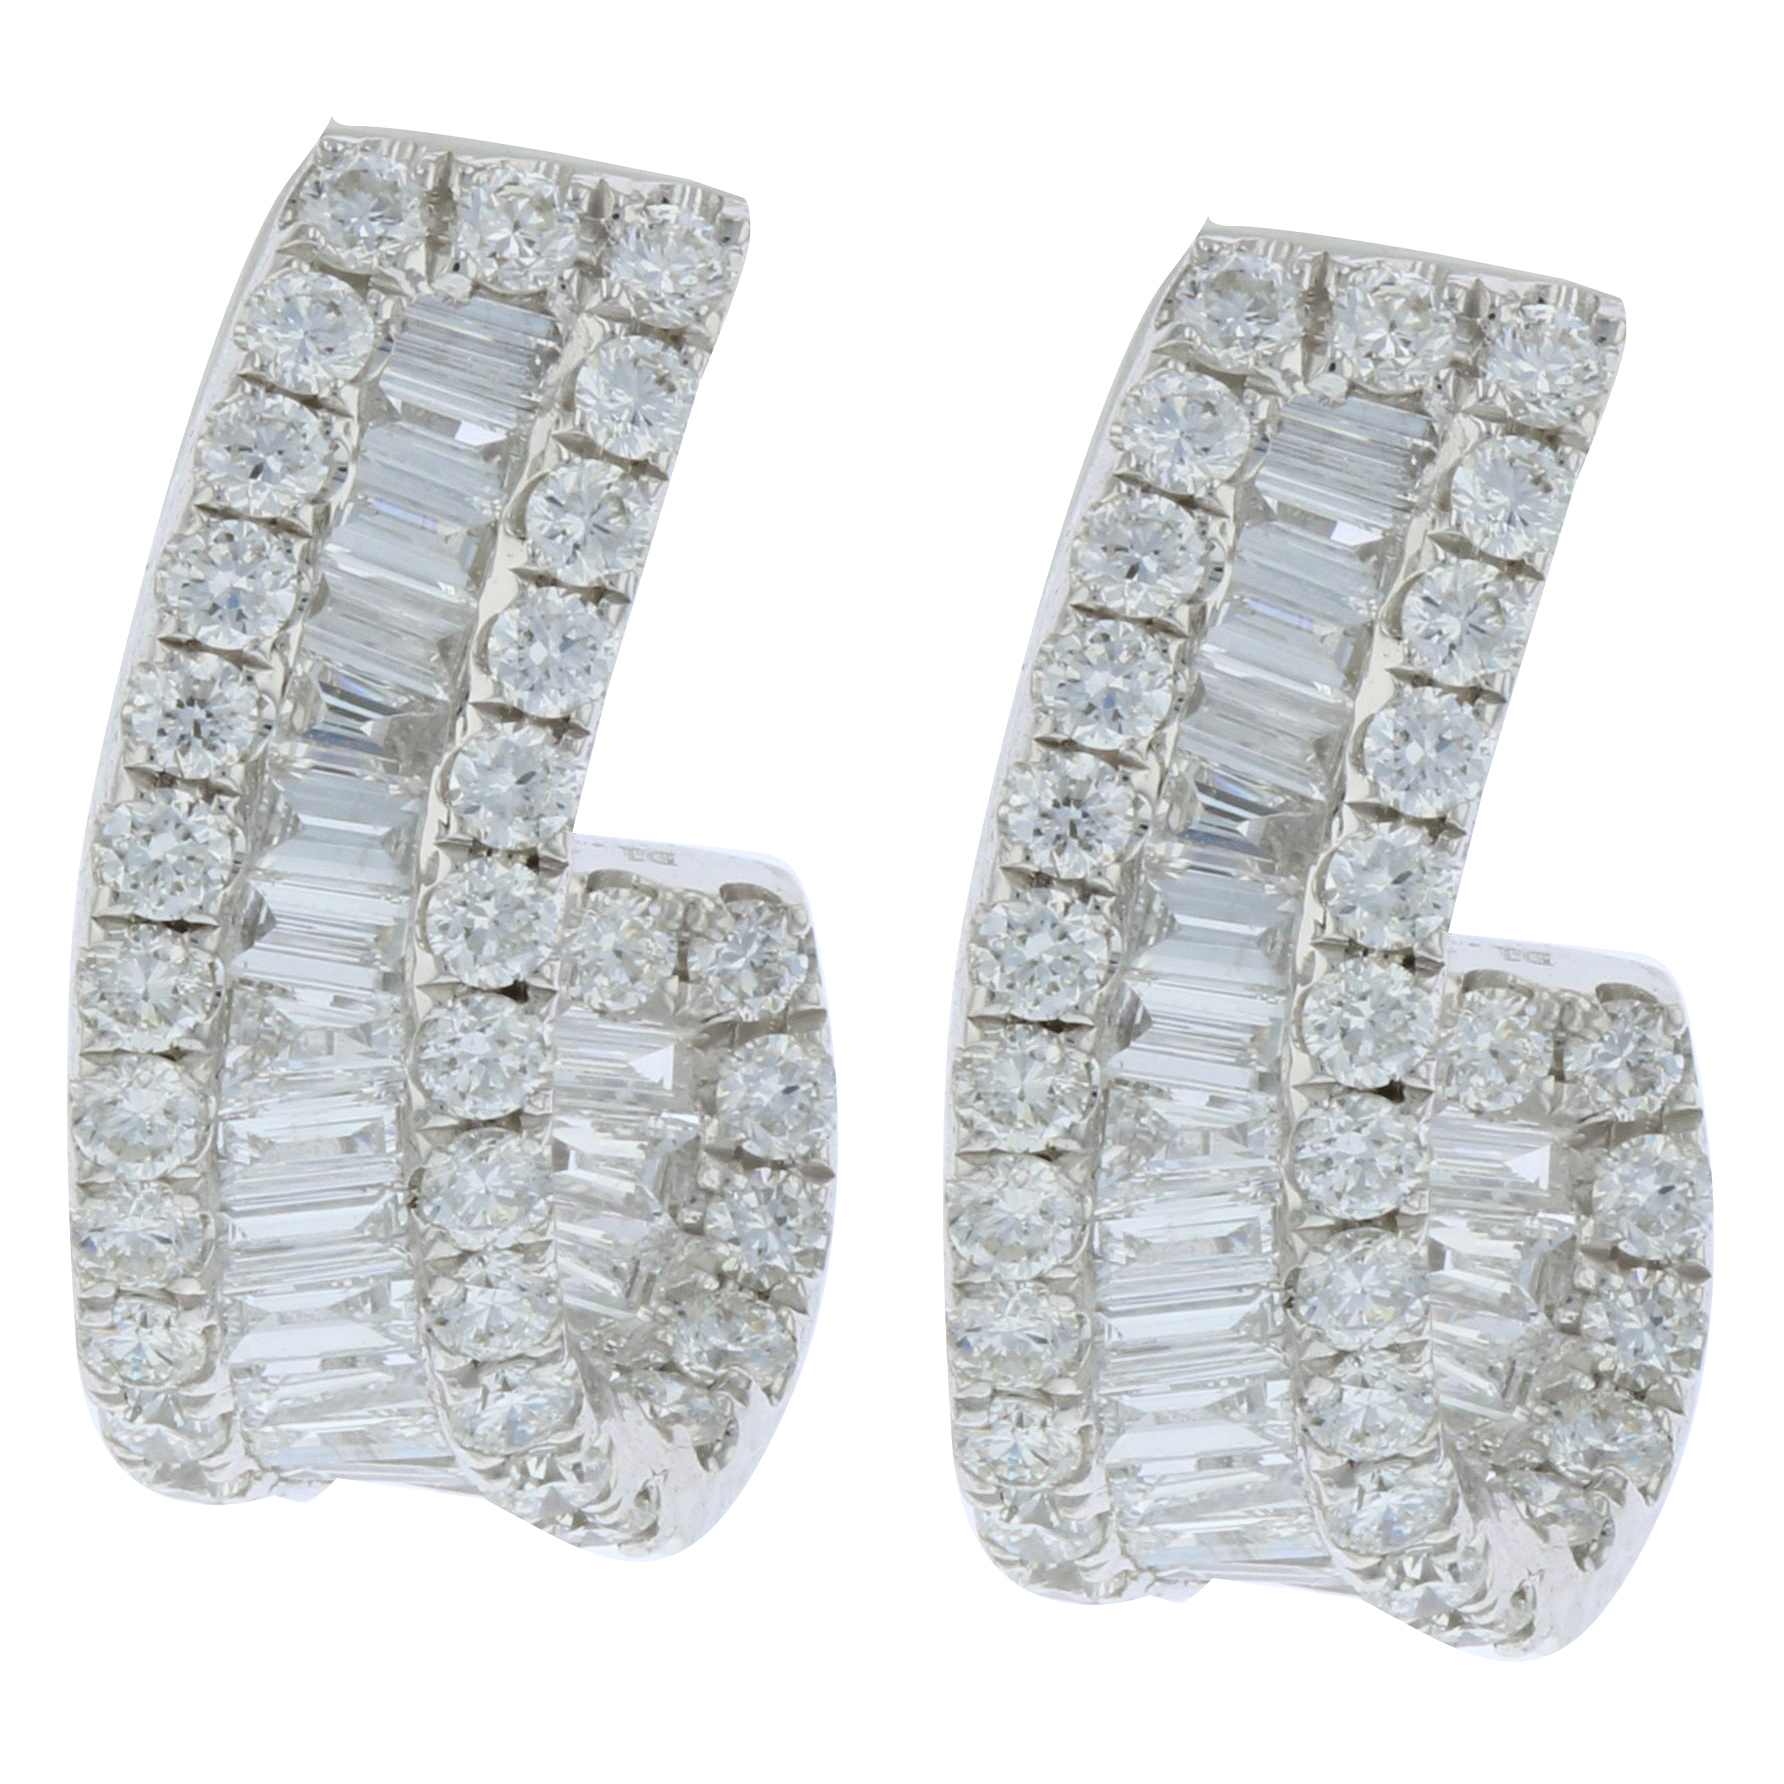 View 1.30ctw Diamond Half Hoop Earrings in 18k White Gold